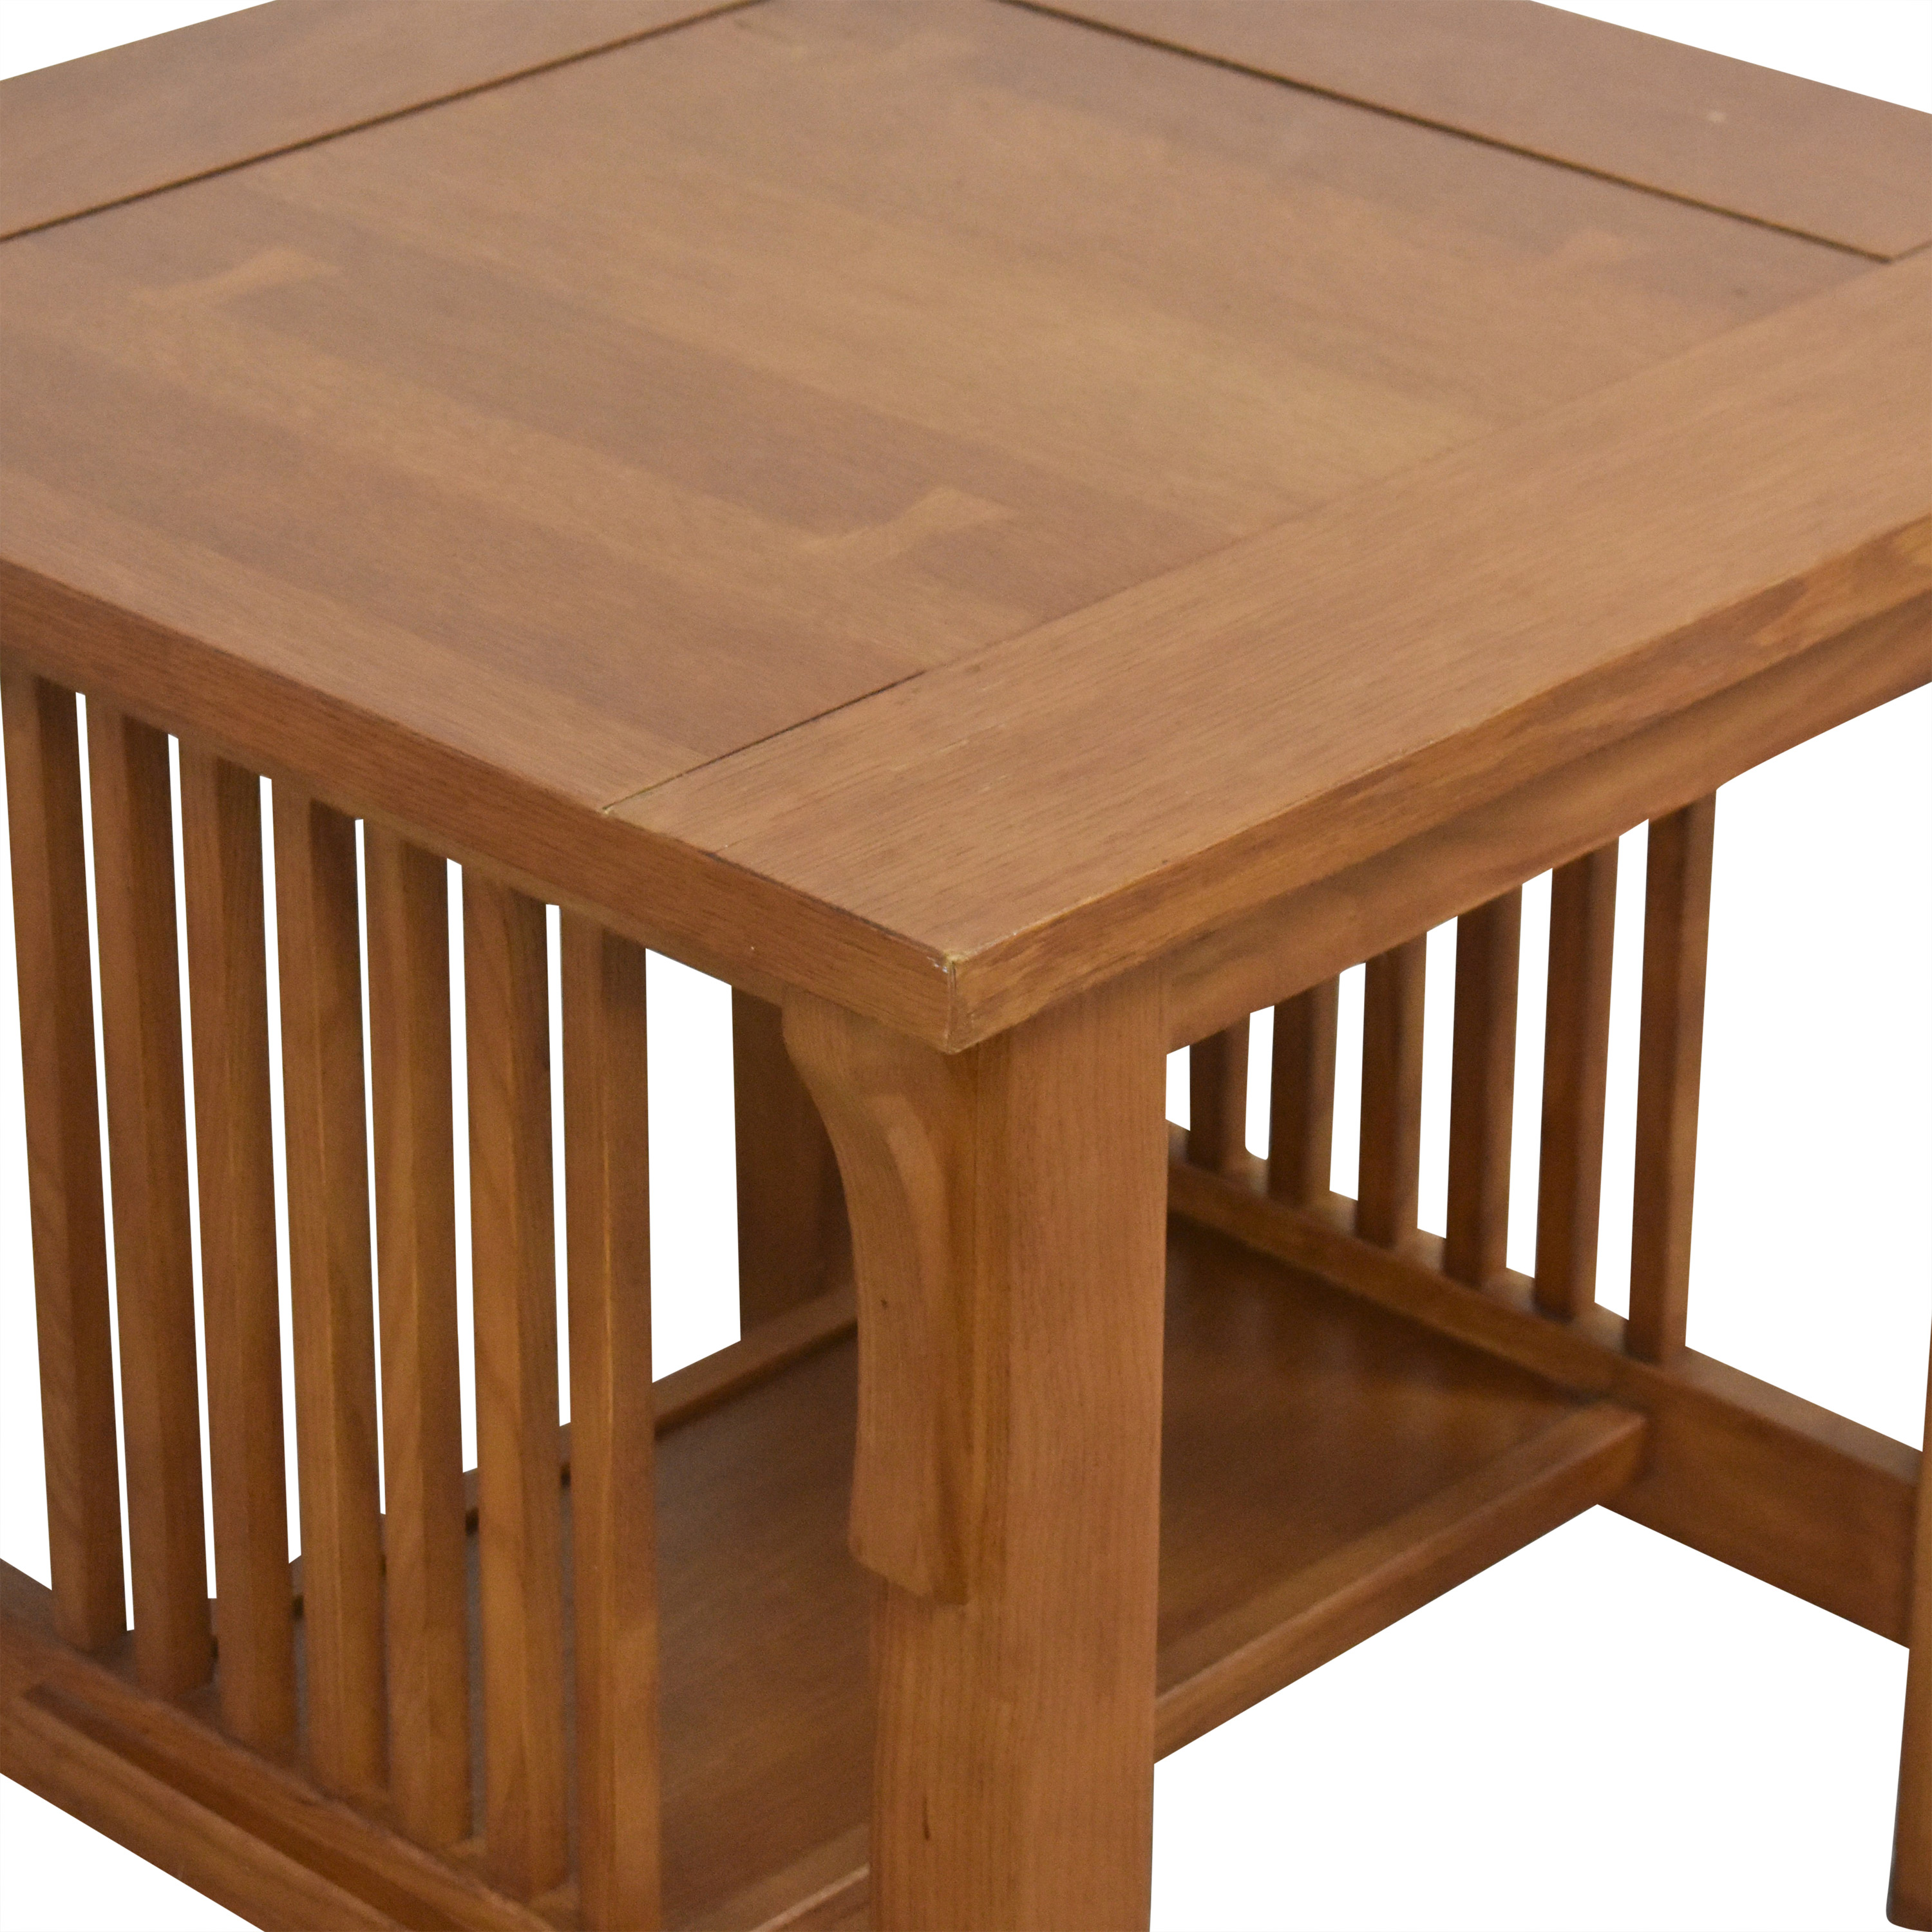 Scott Jordan Furniture Scott Jordan Furniture Mission-Style End Table Tables